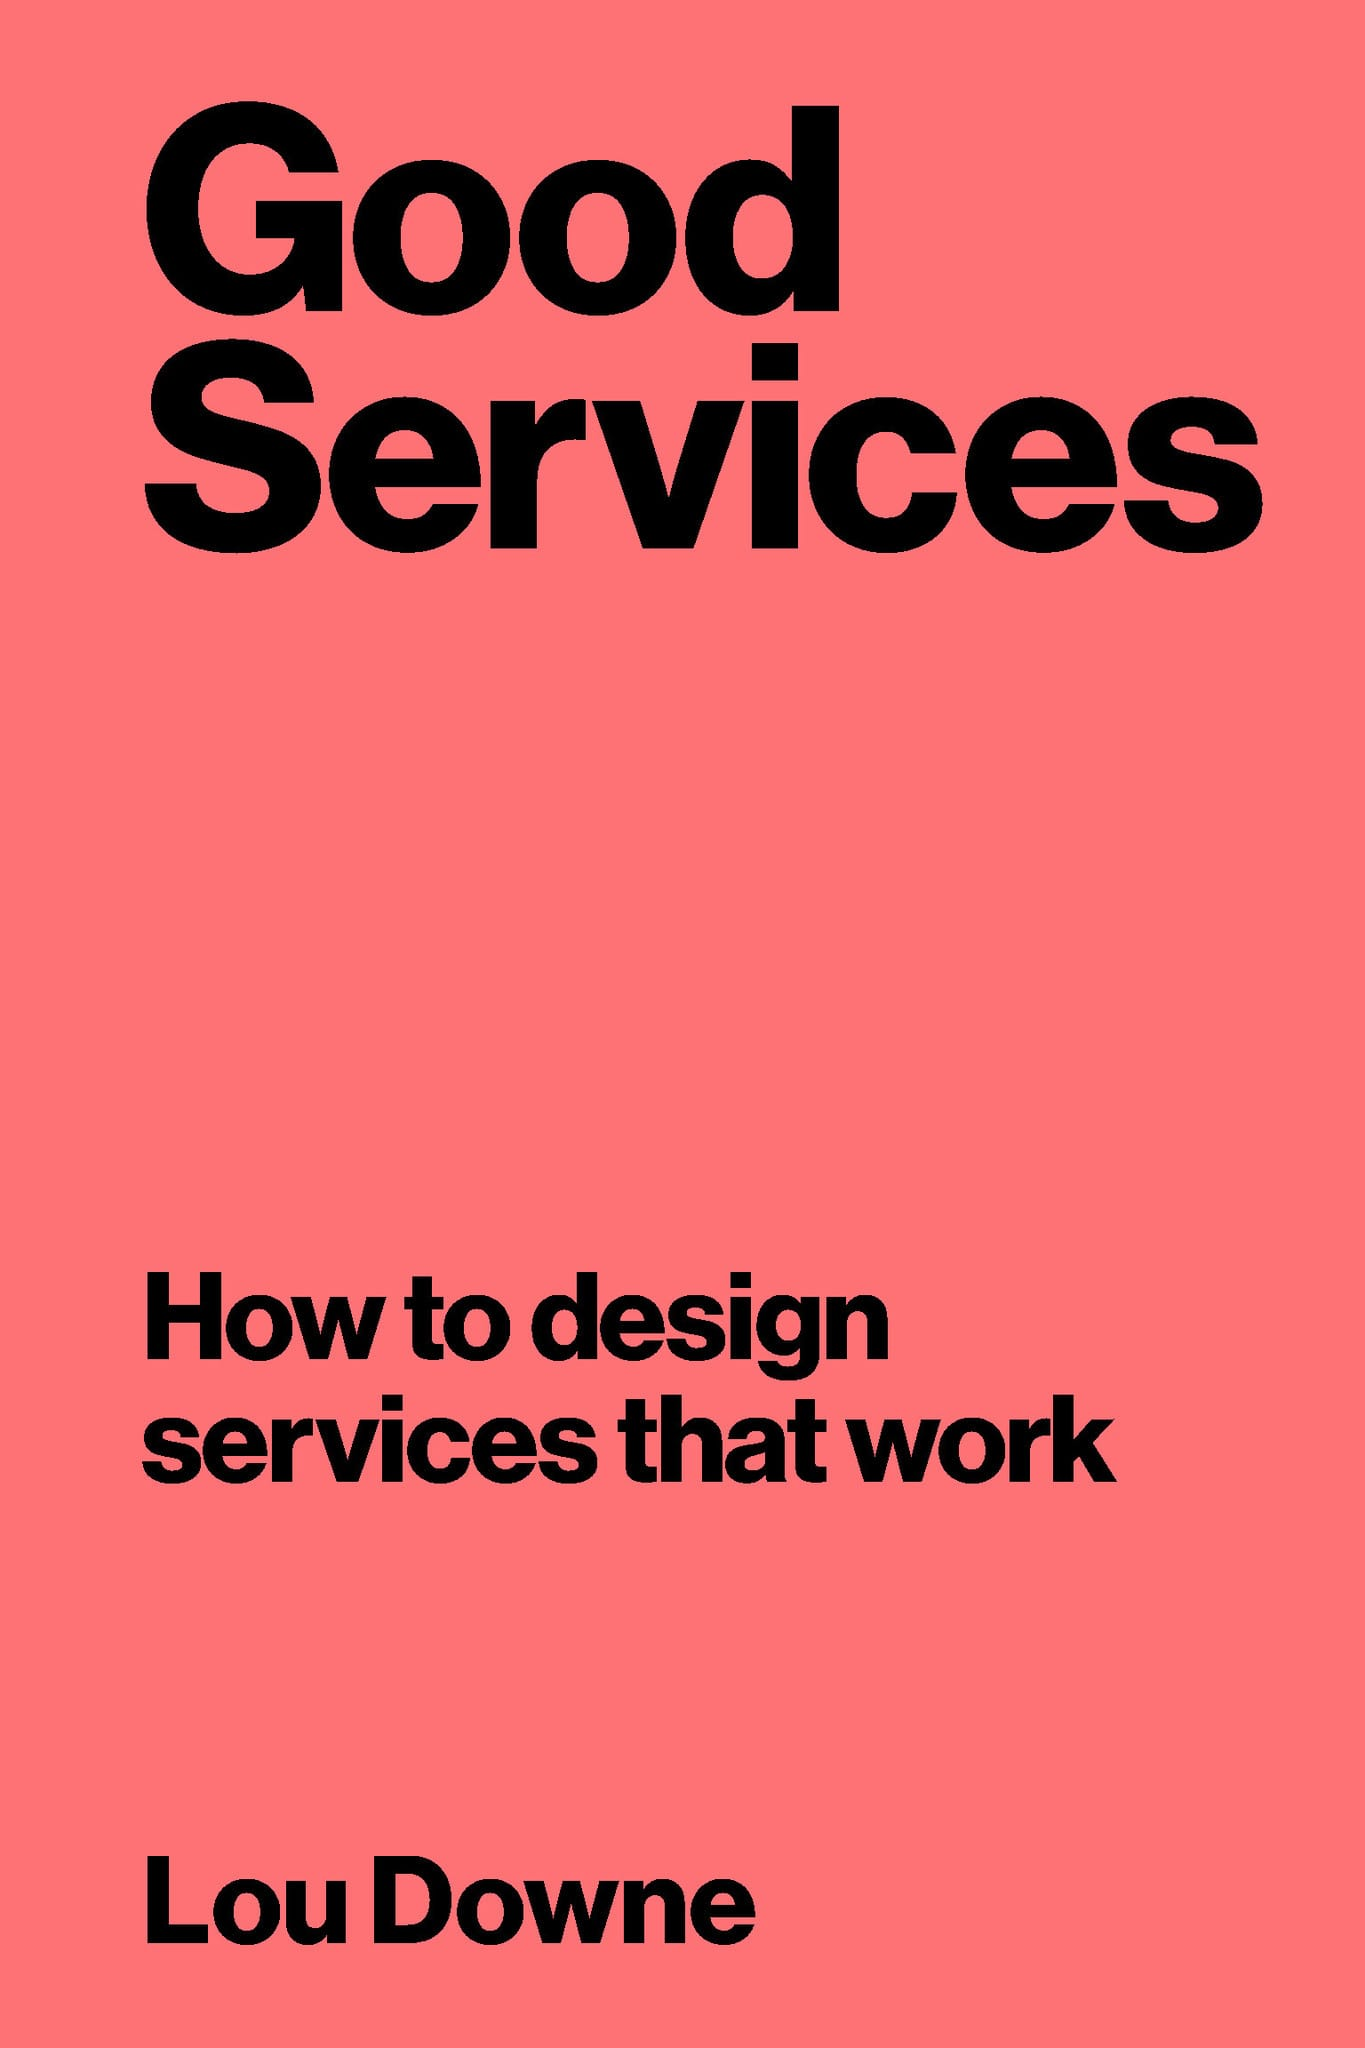 The cover of Good Services